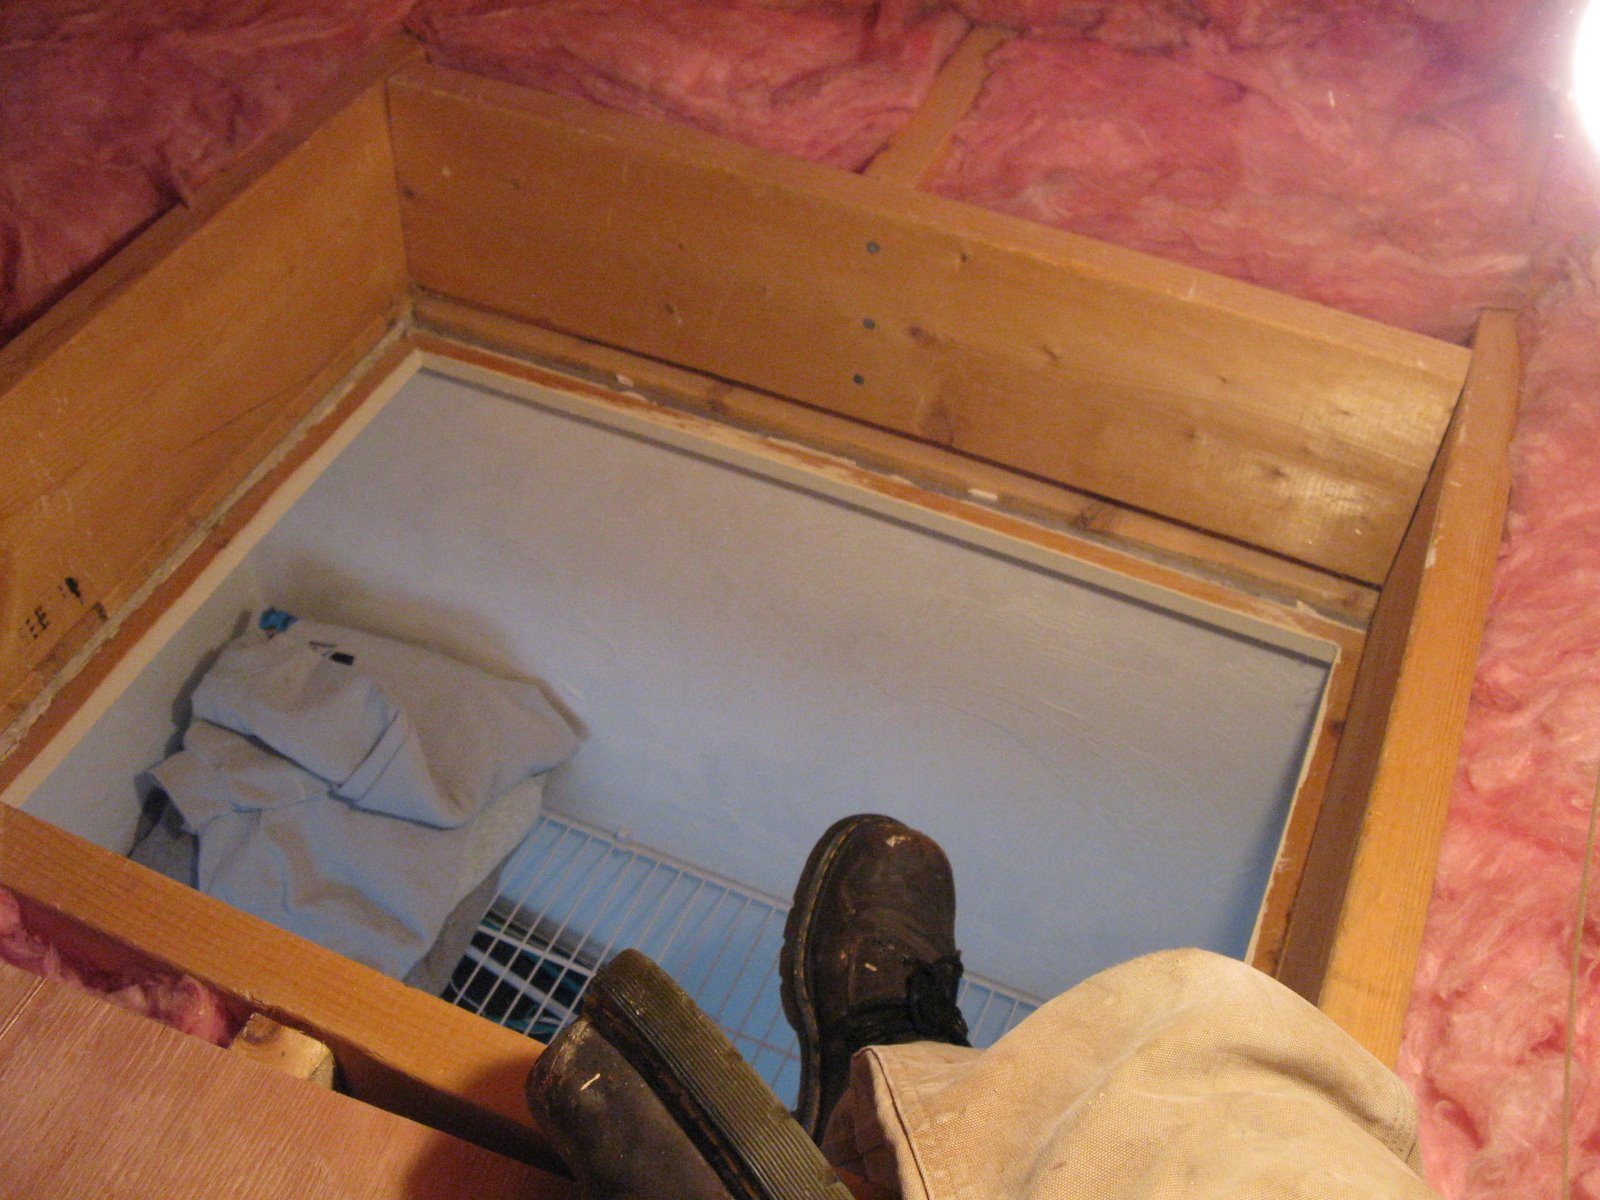 57 Insulating Attic Door 17 Best Ideas About Attic Storage On within dimensions 1600 X 1200 & Attic Door Heat Shield u2022 Attic Ideas